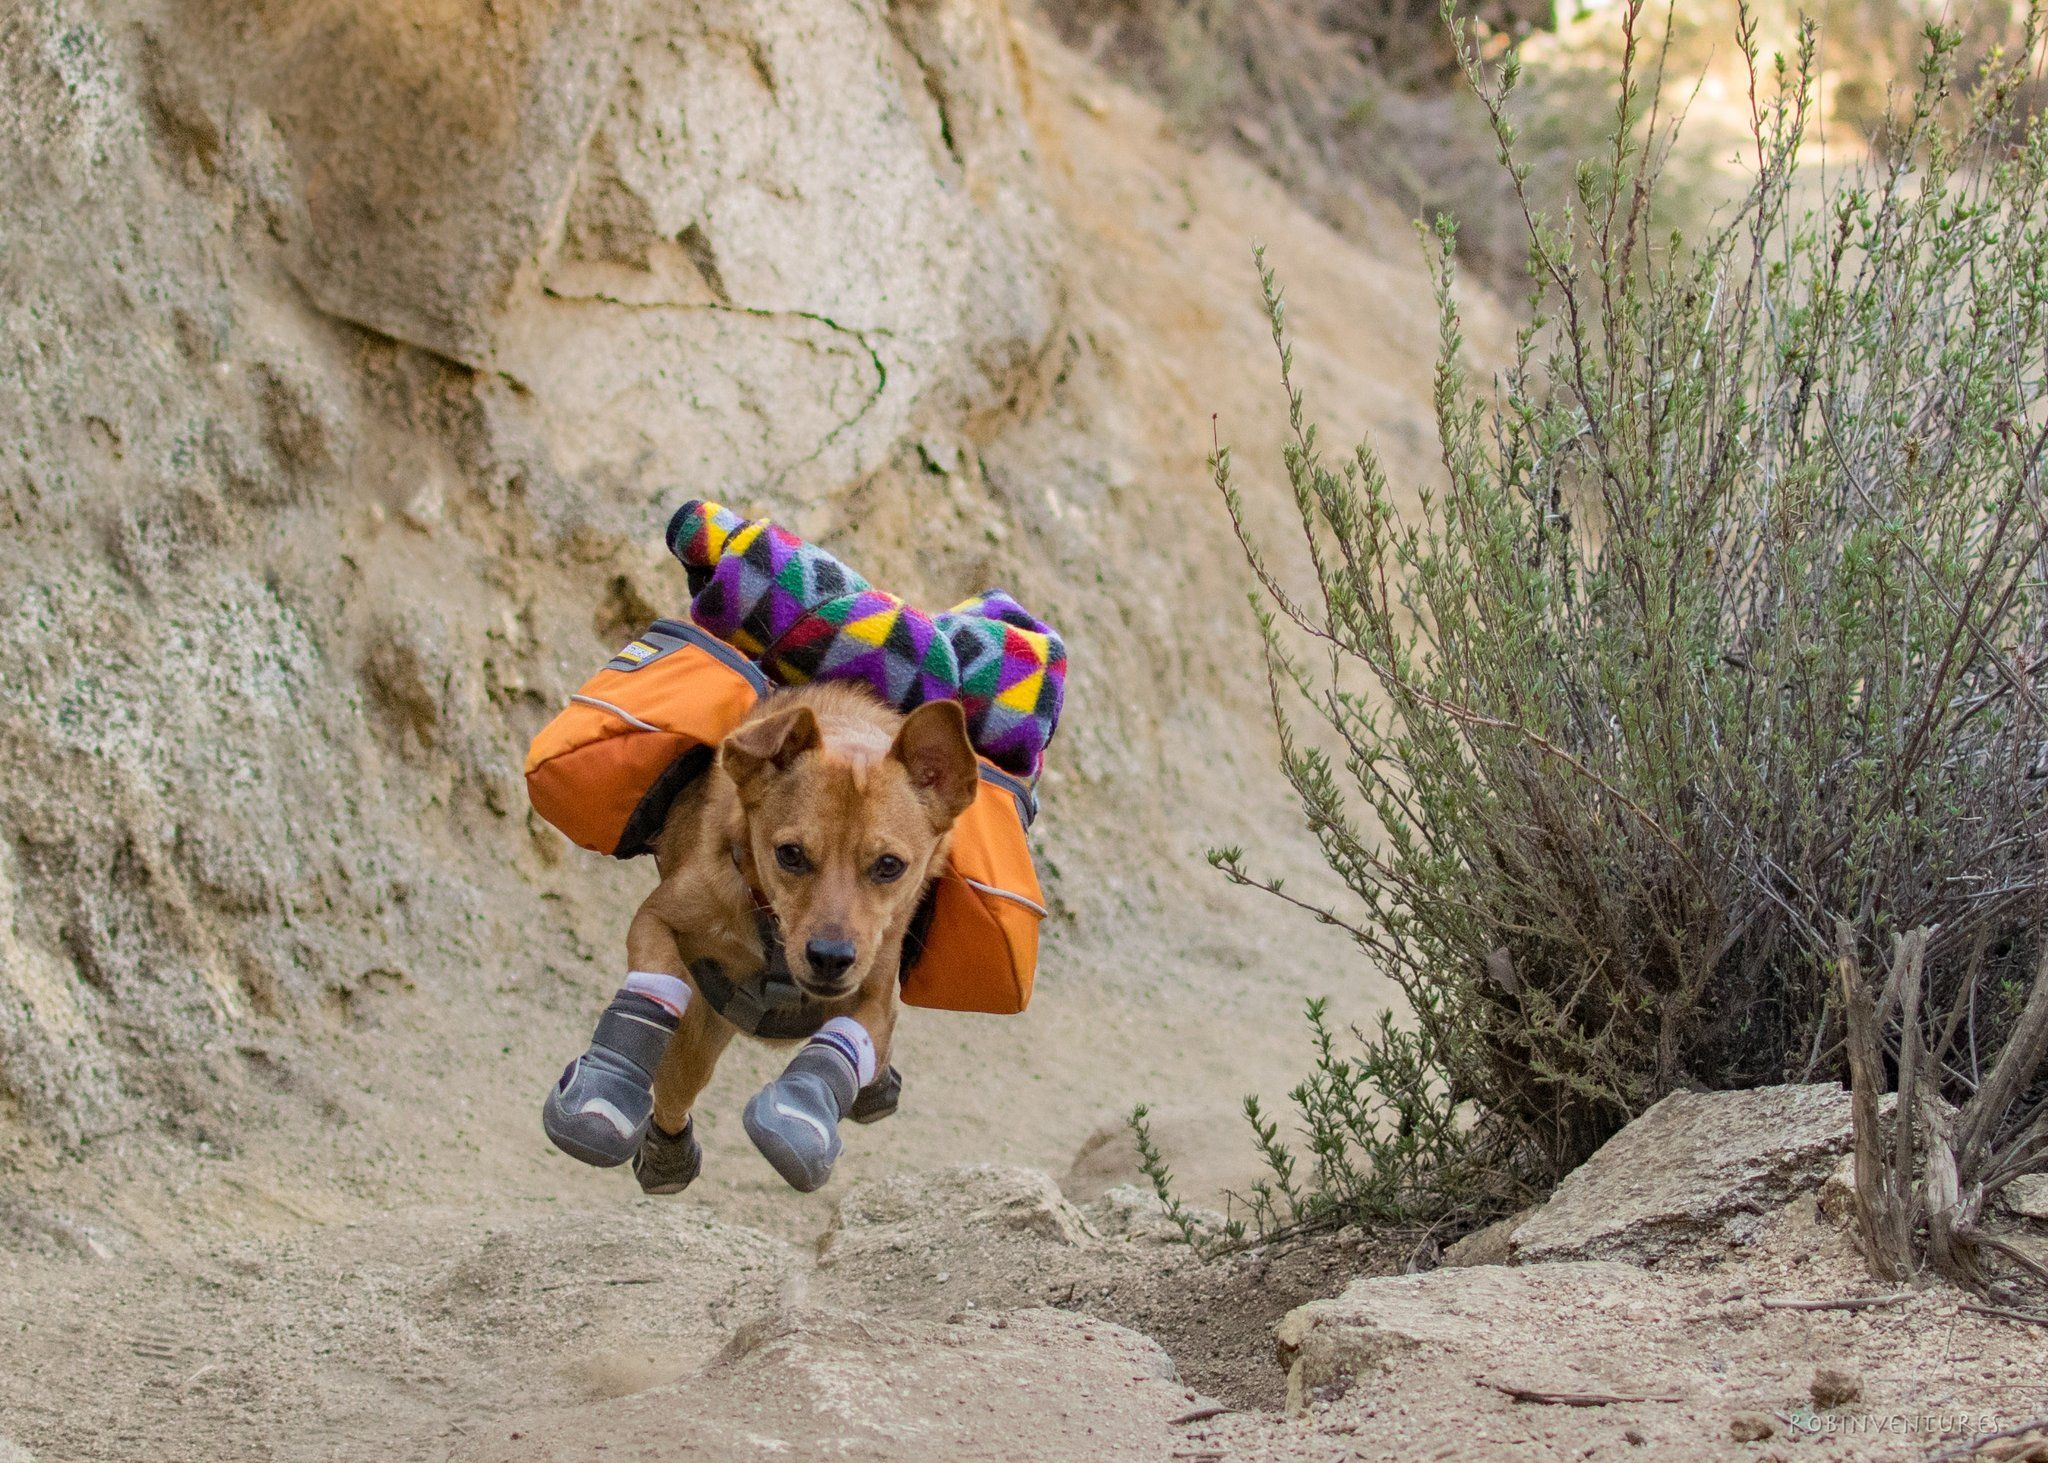 Boots N Snoots A Review On Boots For Your Dog Dog Adventure Diy Dog Backpack Cute Dog Toys